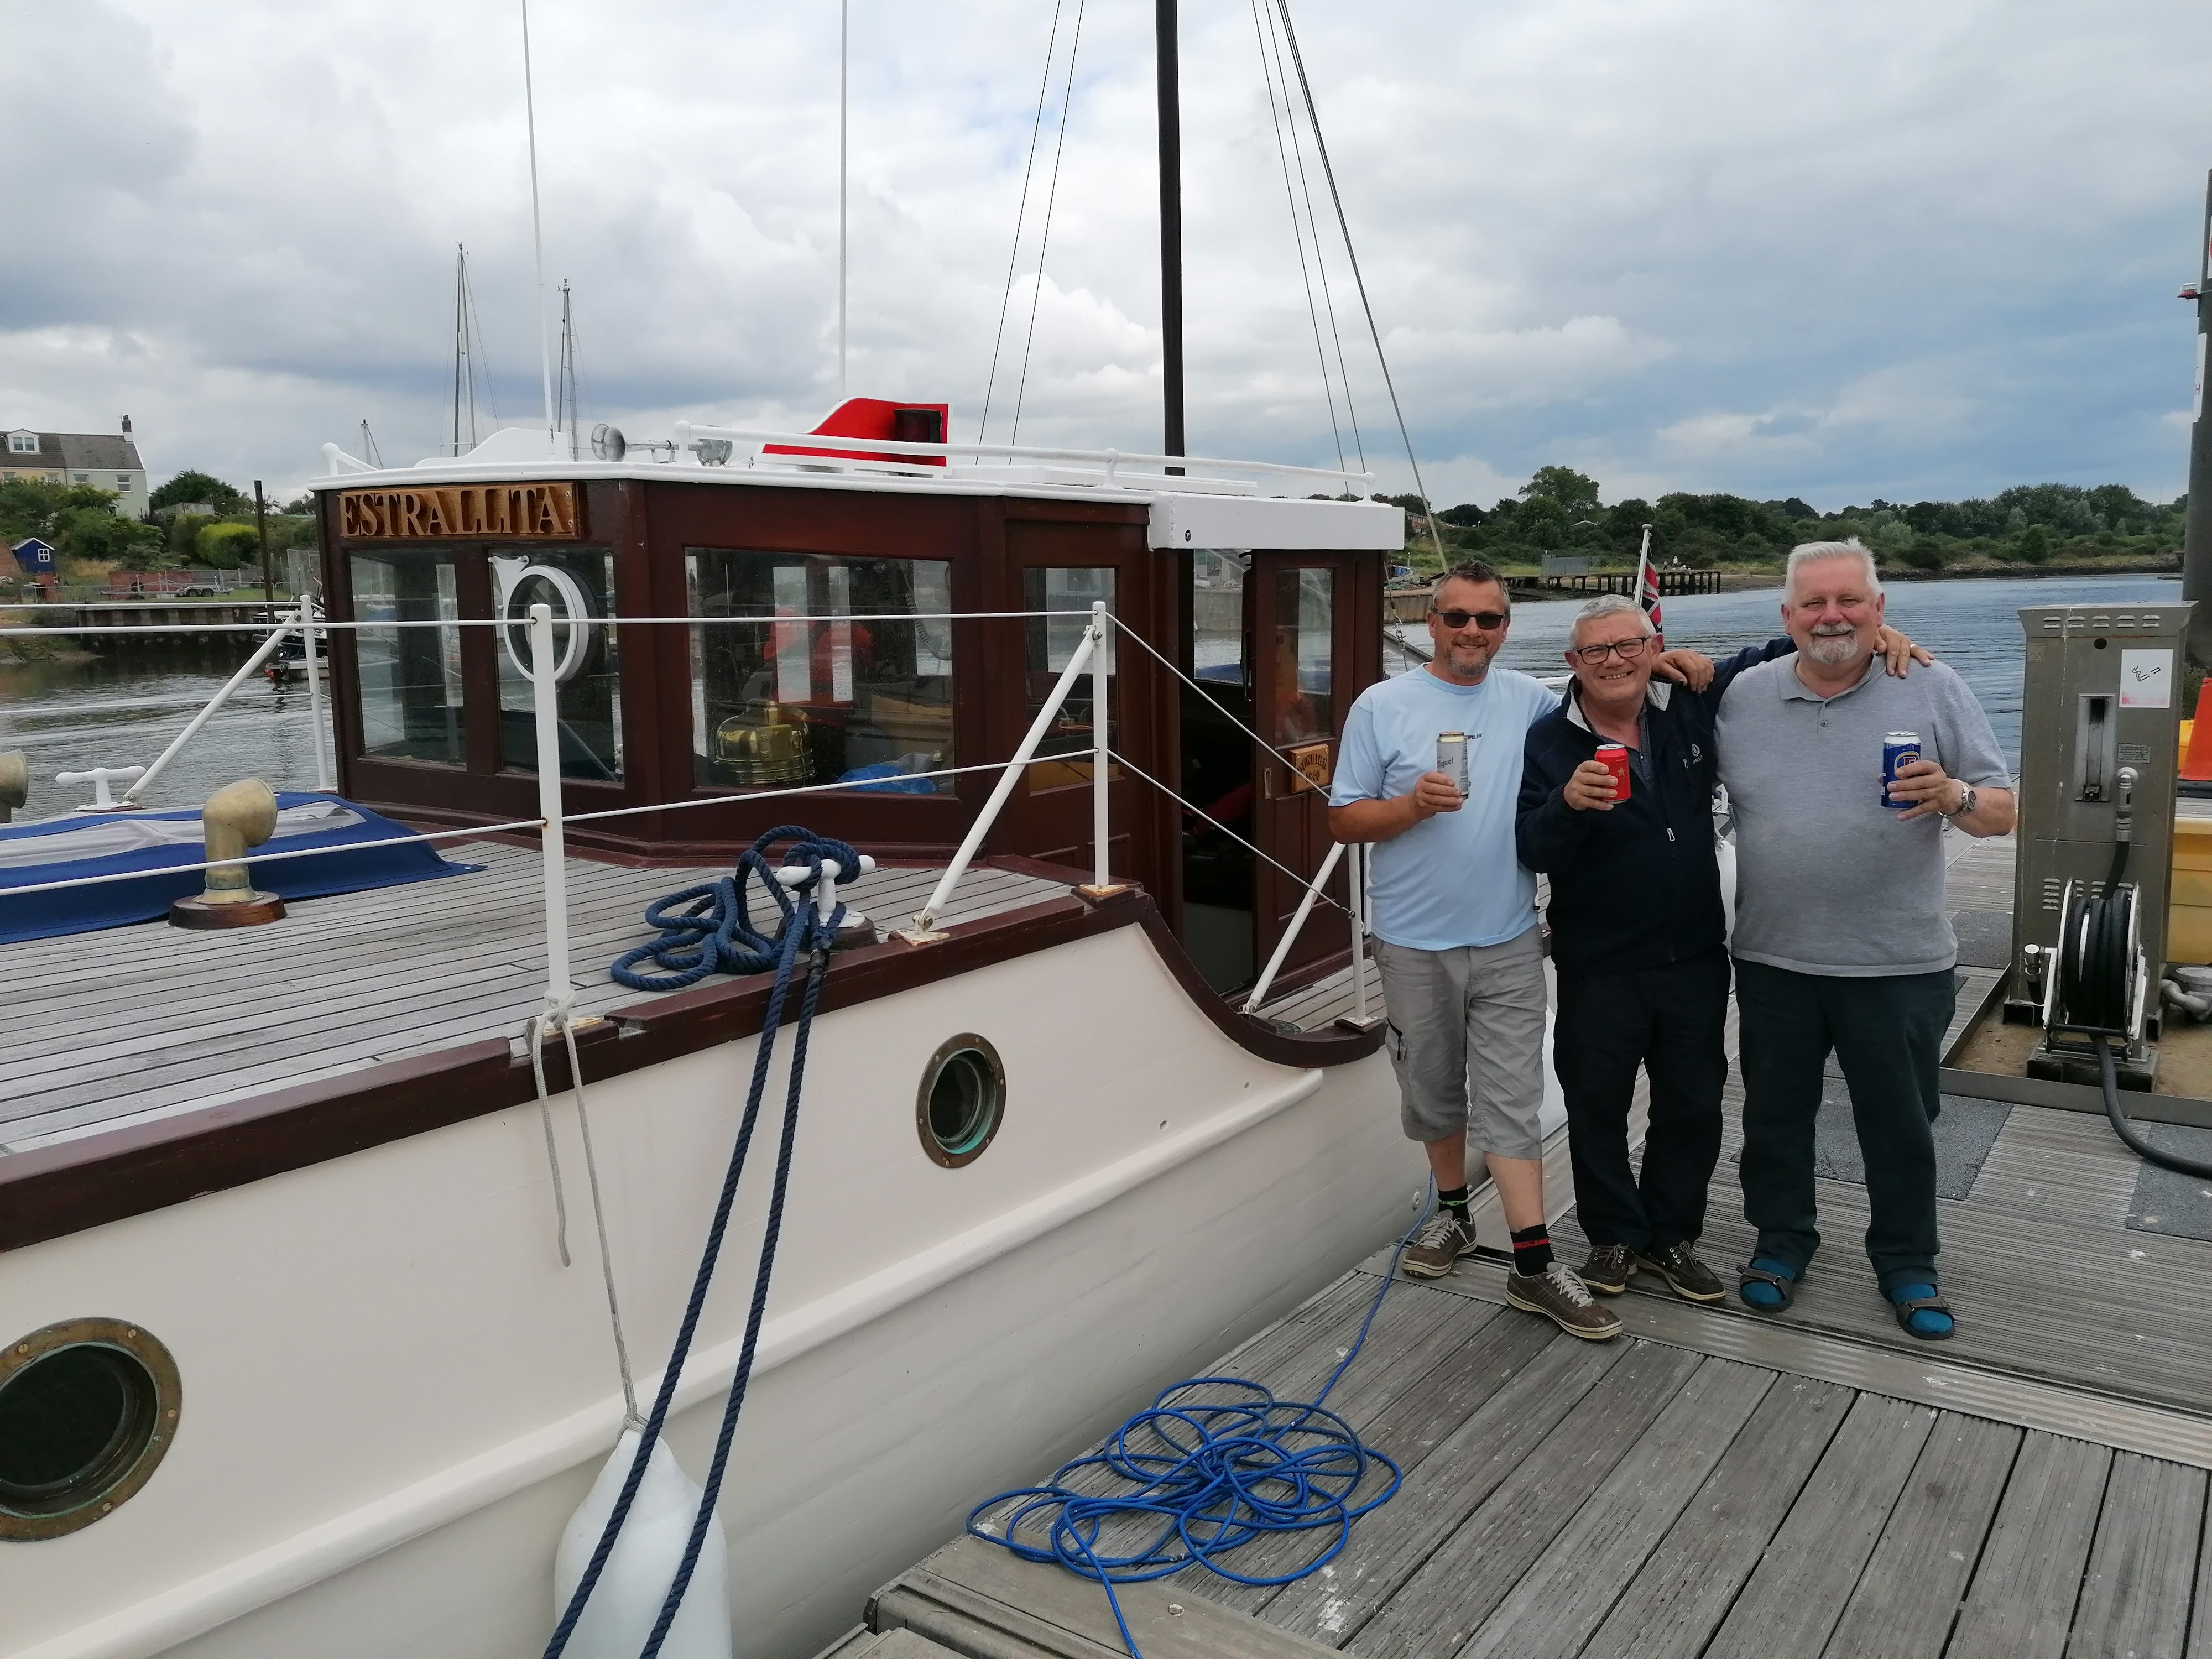 Royal Navy veteran takes part in maiden voyage of refurbished 'little ship of Dunkirk'